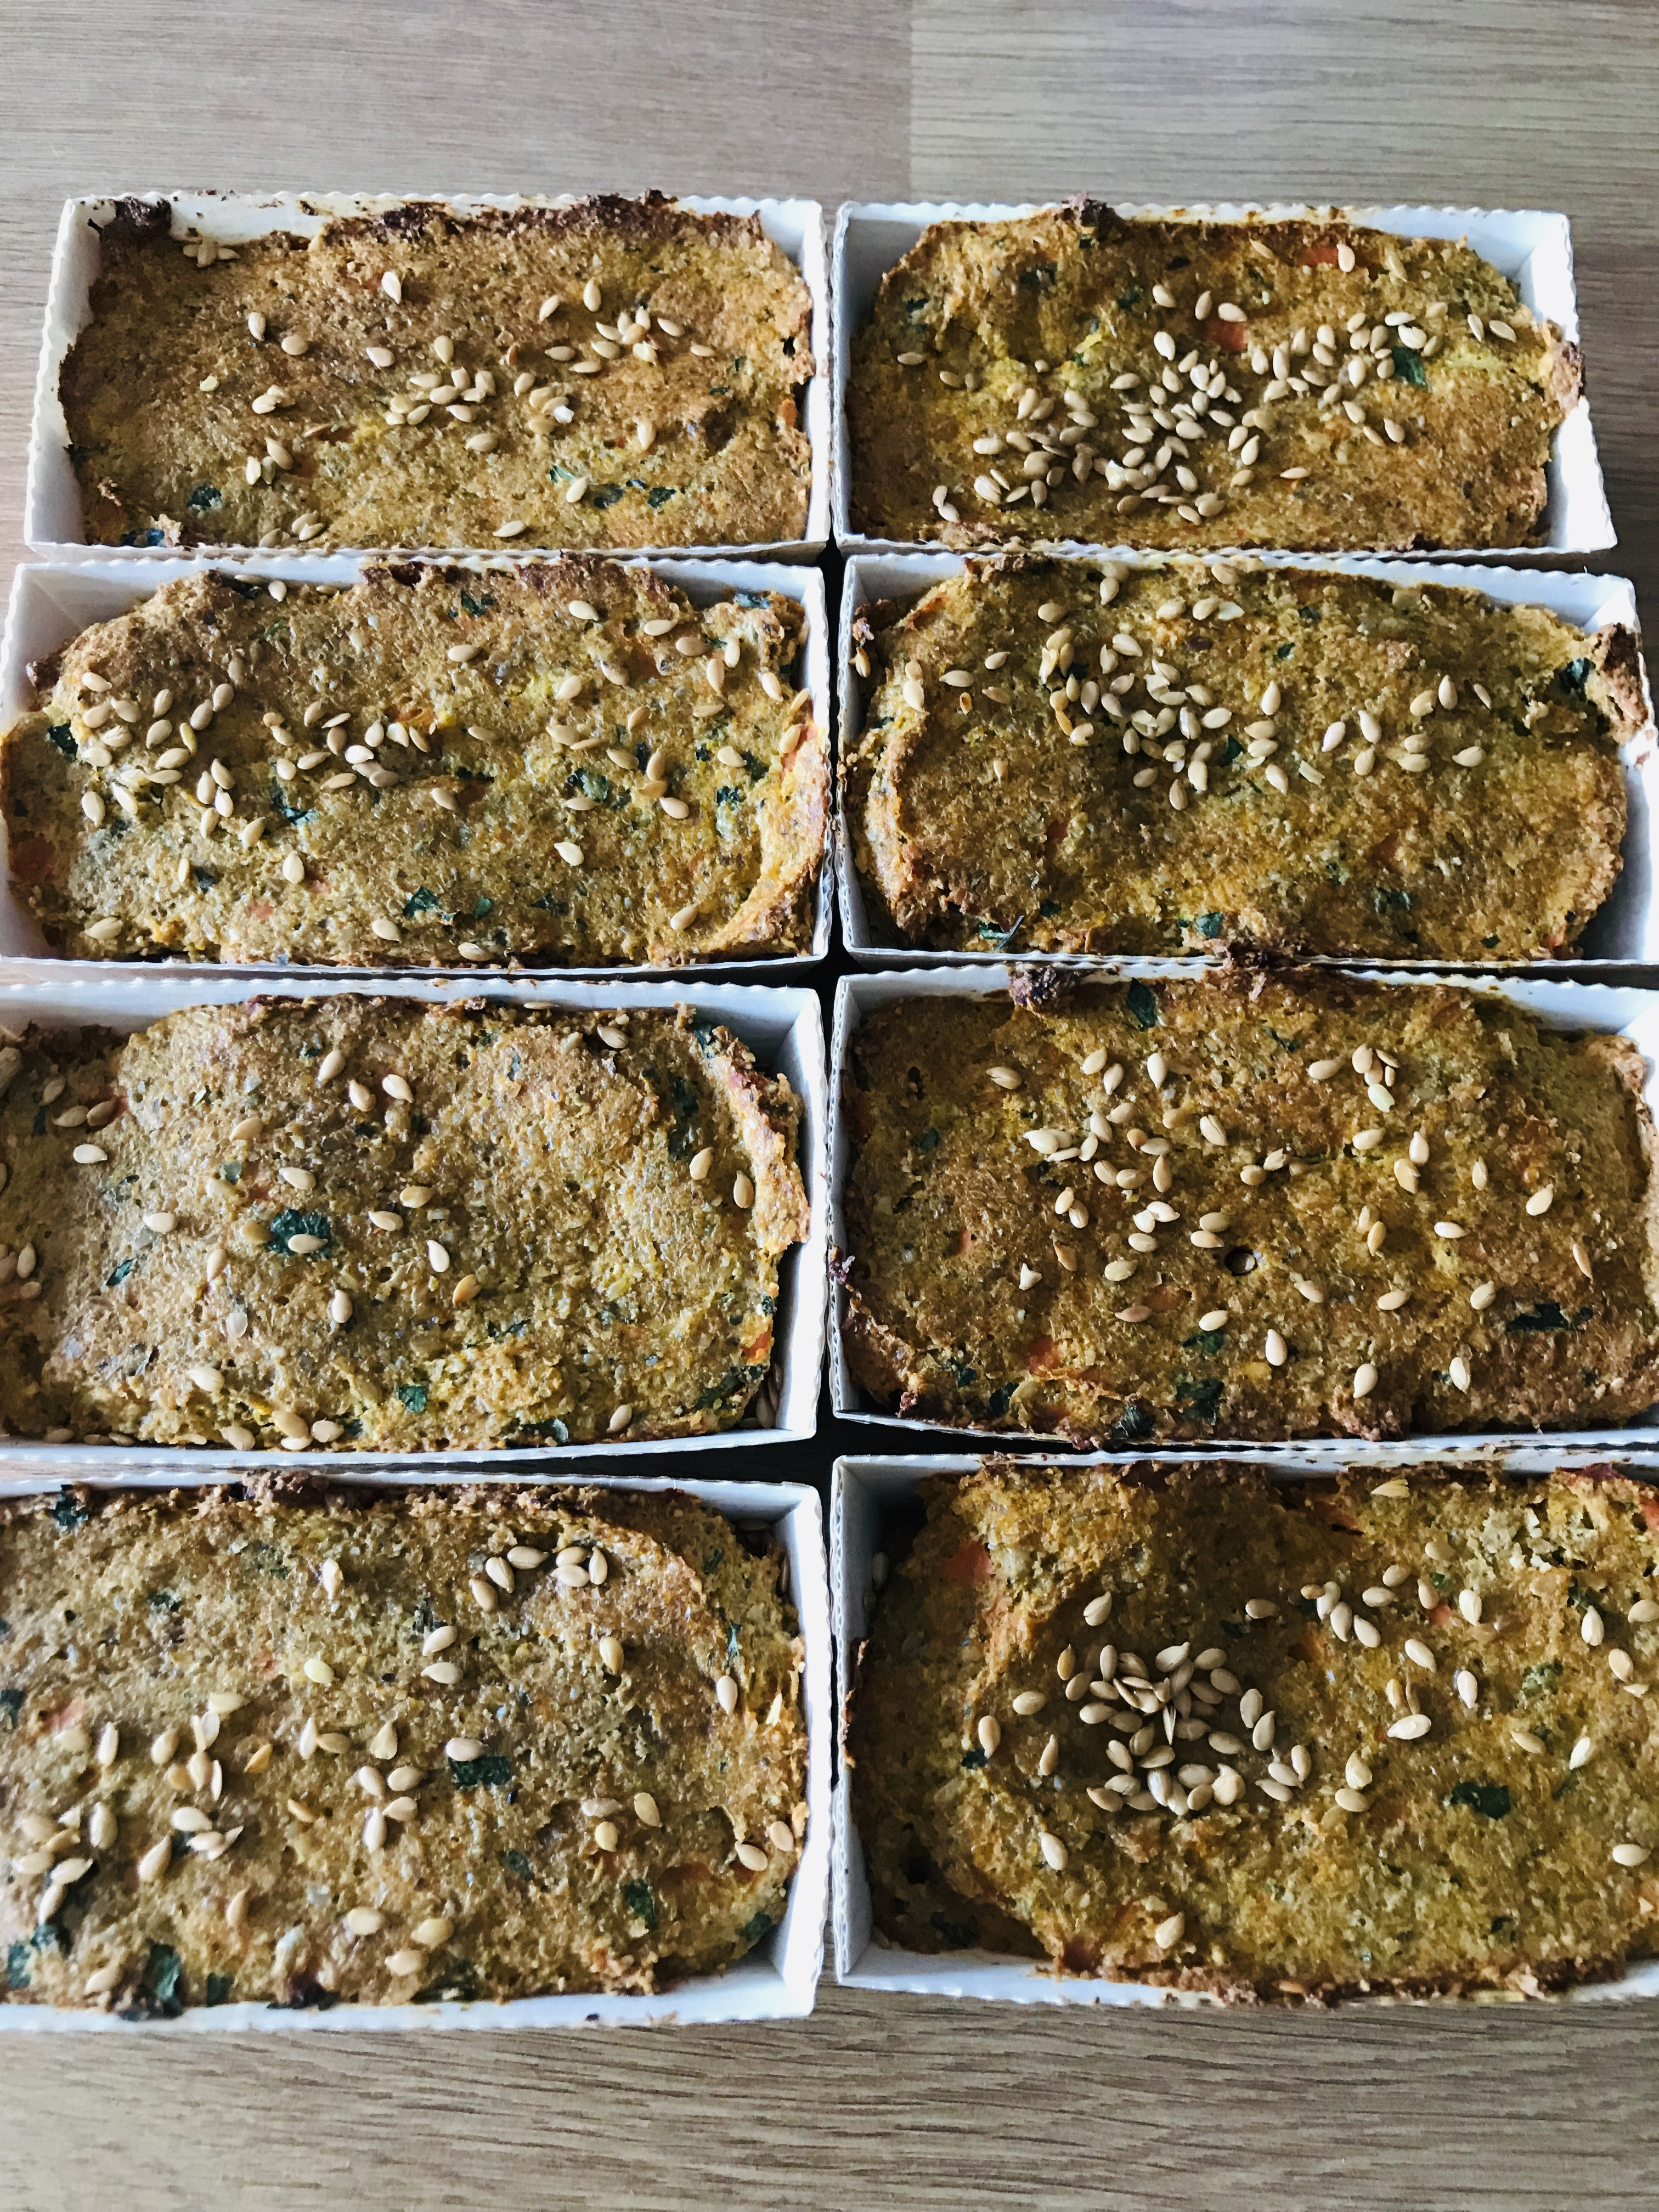 Snack Carrot & Seed Loaves